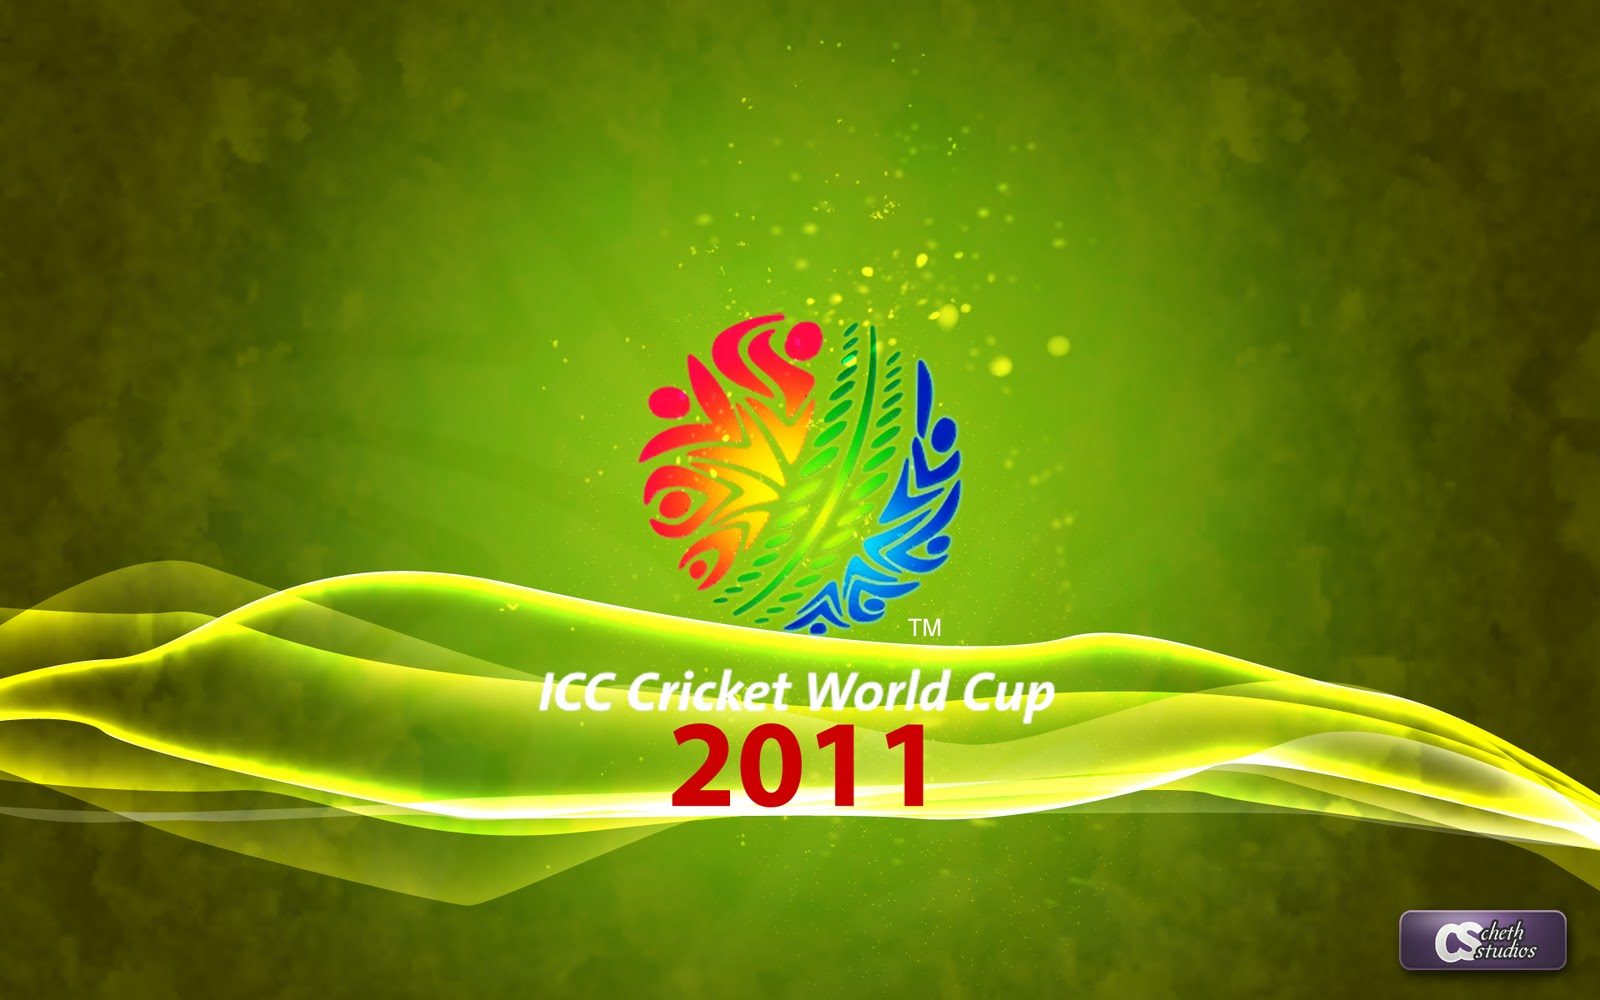 http://2.bp.blogspot.com/_bIDM70GluWY/TUvOCMzOyUI/AAAAAAAAAKU/GNs_hNTl1bE/s1600/icc-cricket-world-cup-2011-wallpapers%255Bworld4free.in%255D+%25286%2529.jpg